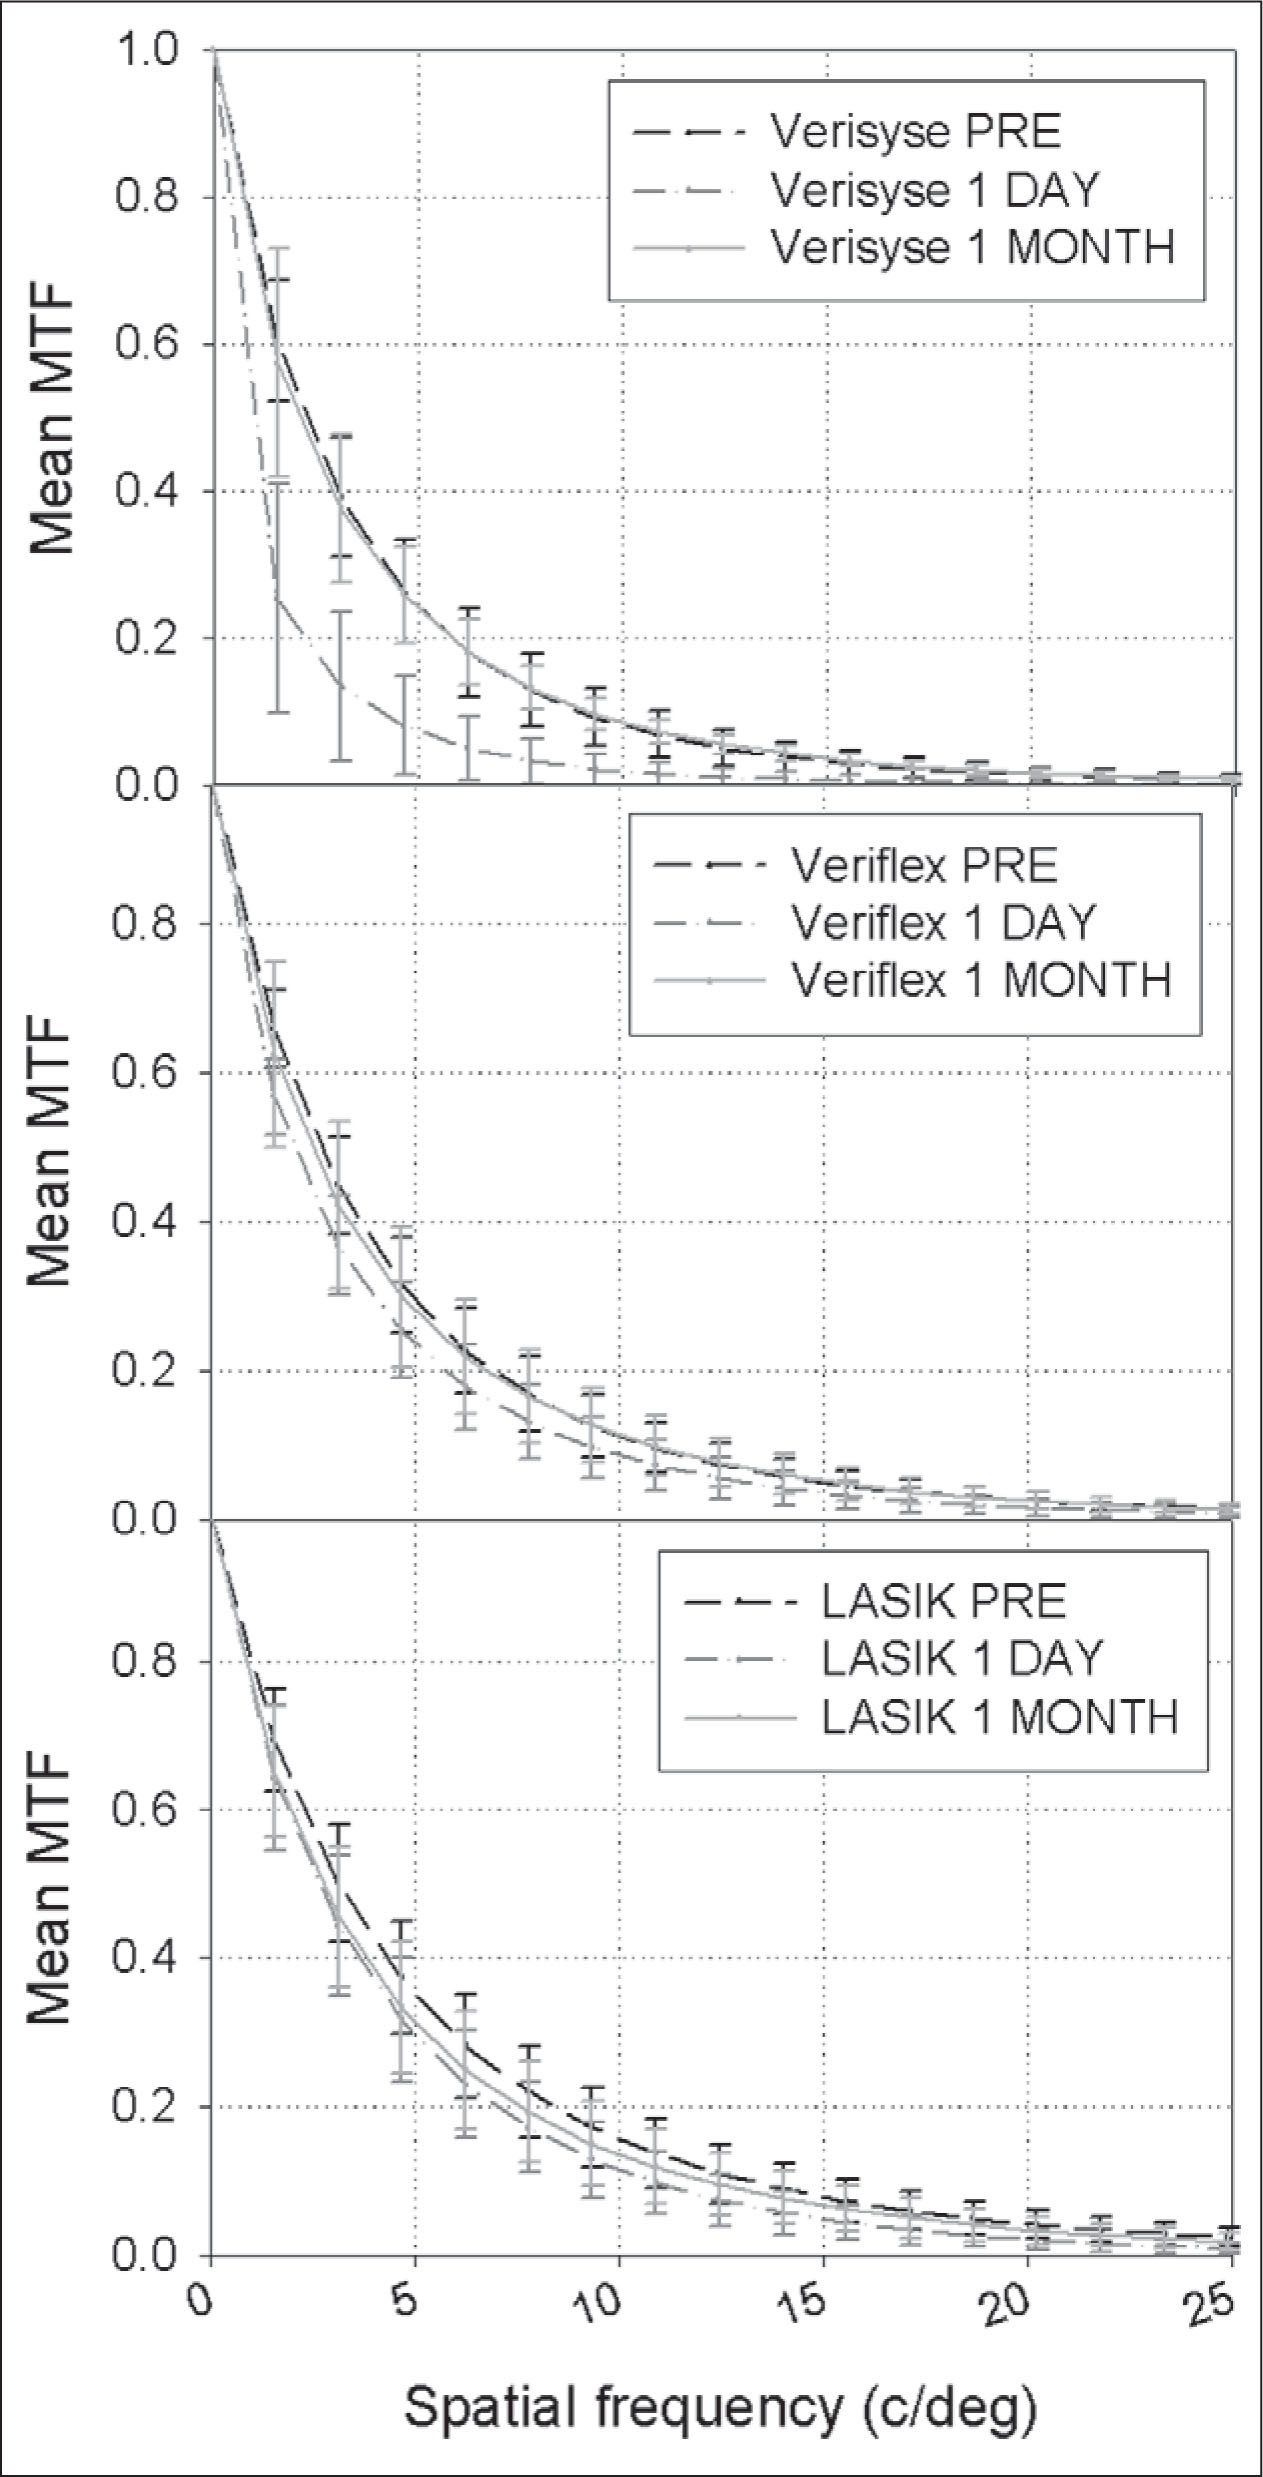 Mean Modulation Transfer Function (MTF) for 9 Verisyse Patients (top), 11 Veriflex Patients (middle), and 25 LASIK Patients (bottom) Preoperatively and 1 Day and 1 Month After Surgery.